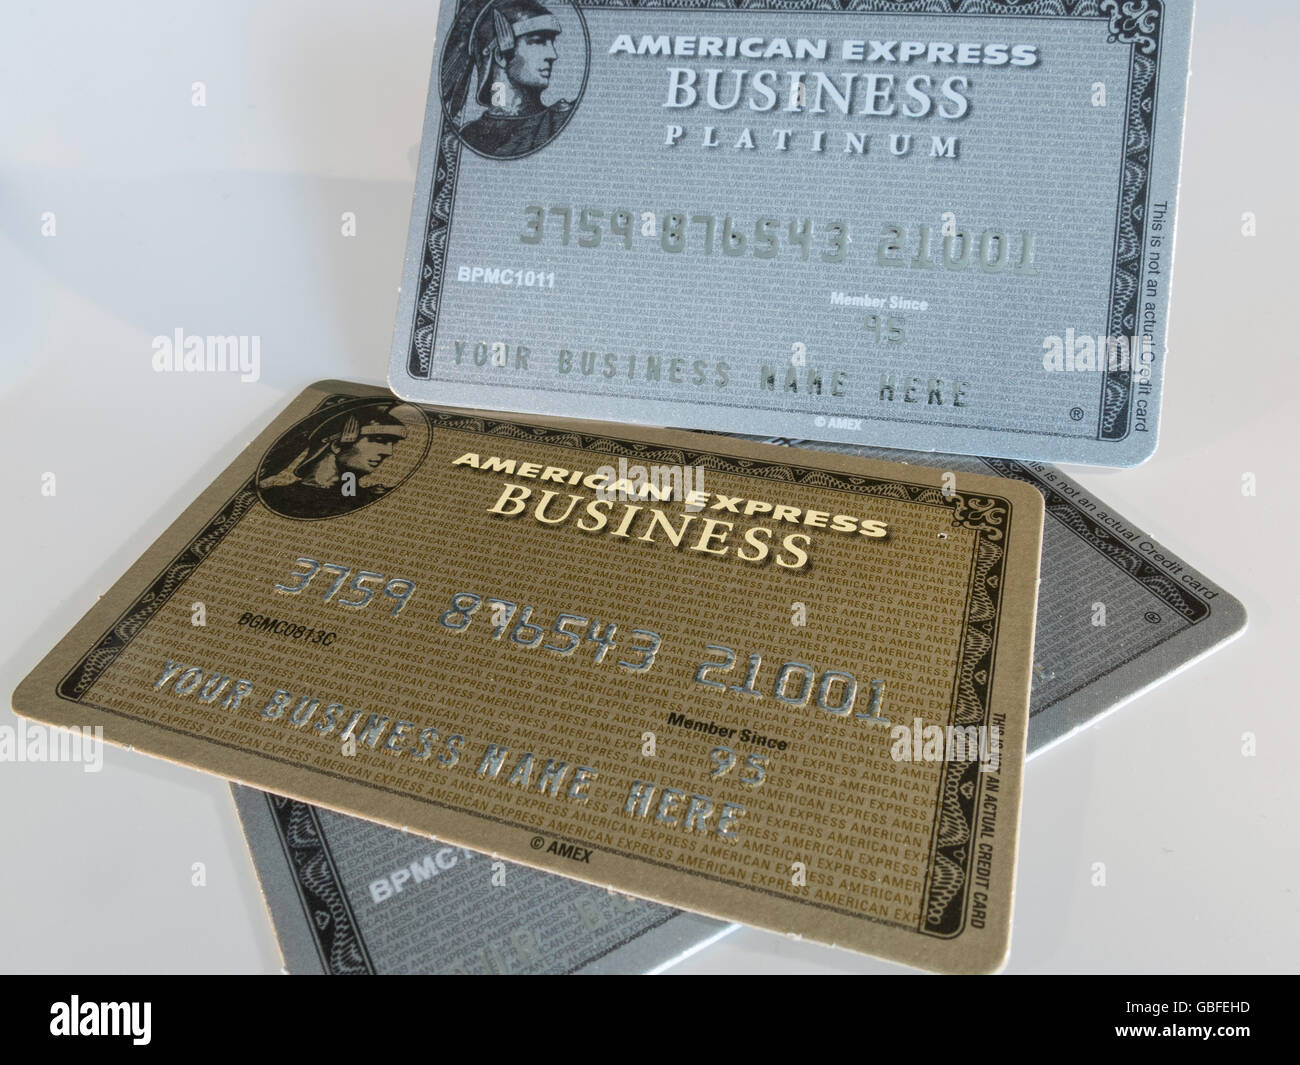 American express business credit cards stock photo 110364169 alamy american express business credit cards colourmoves